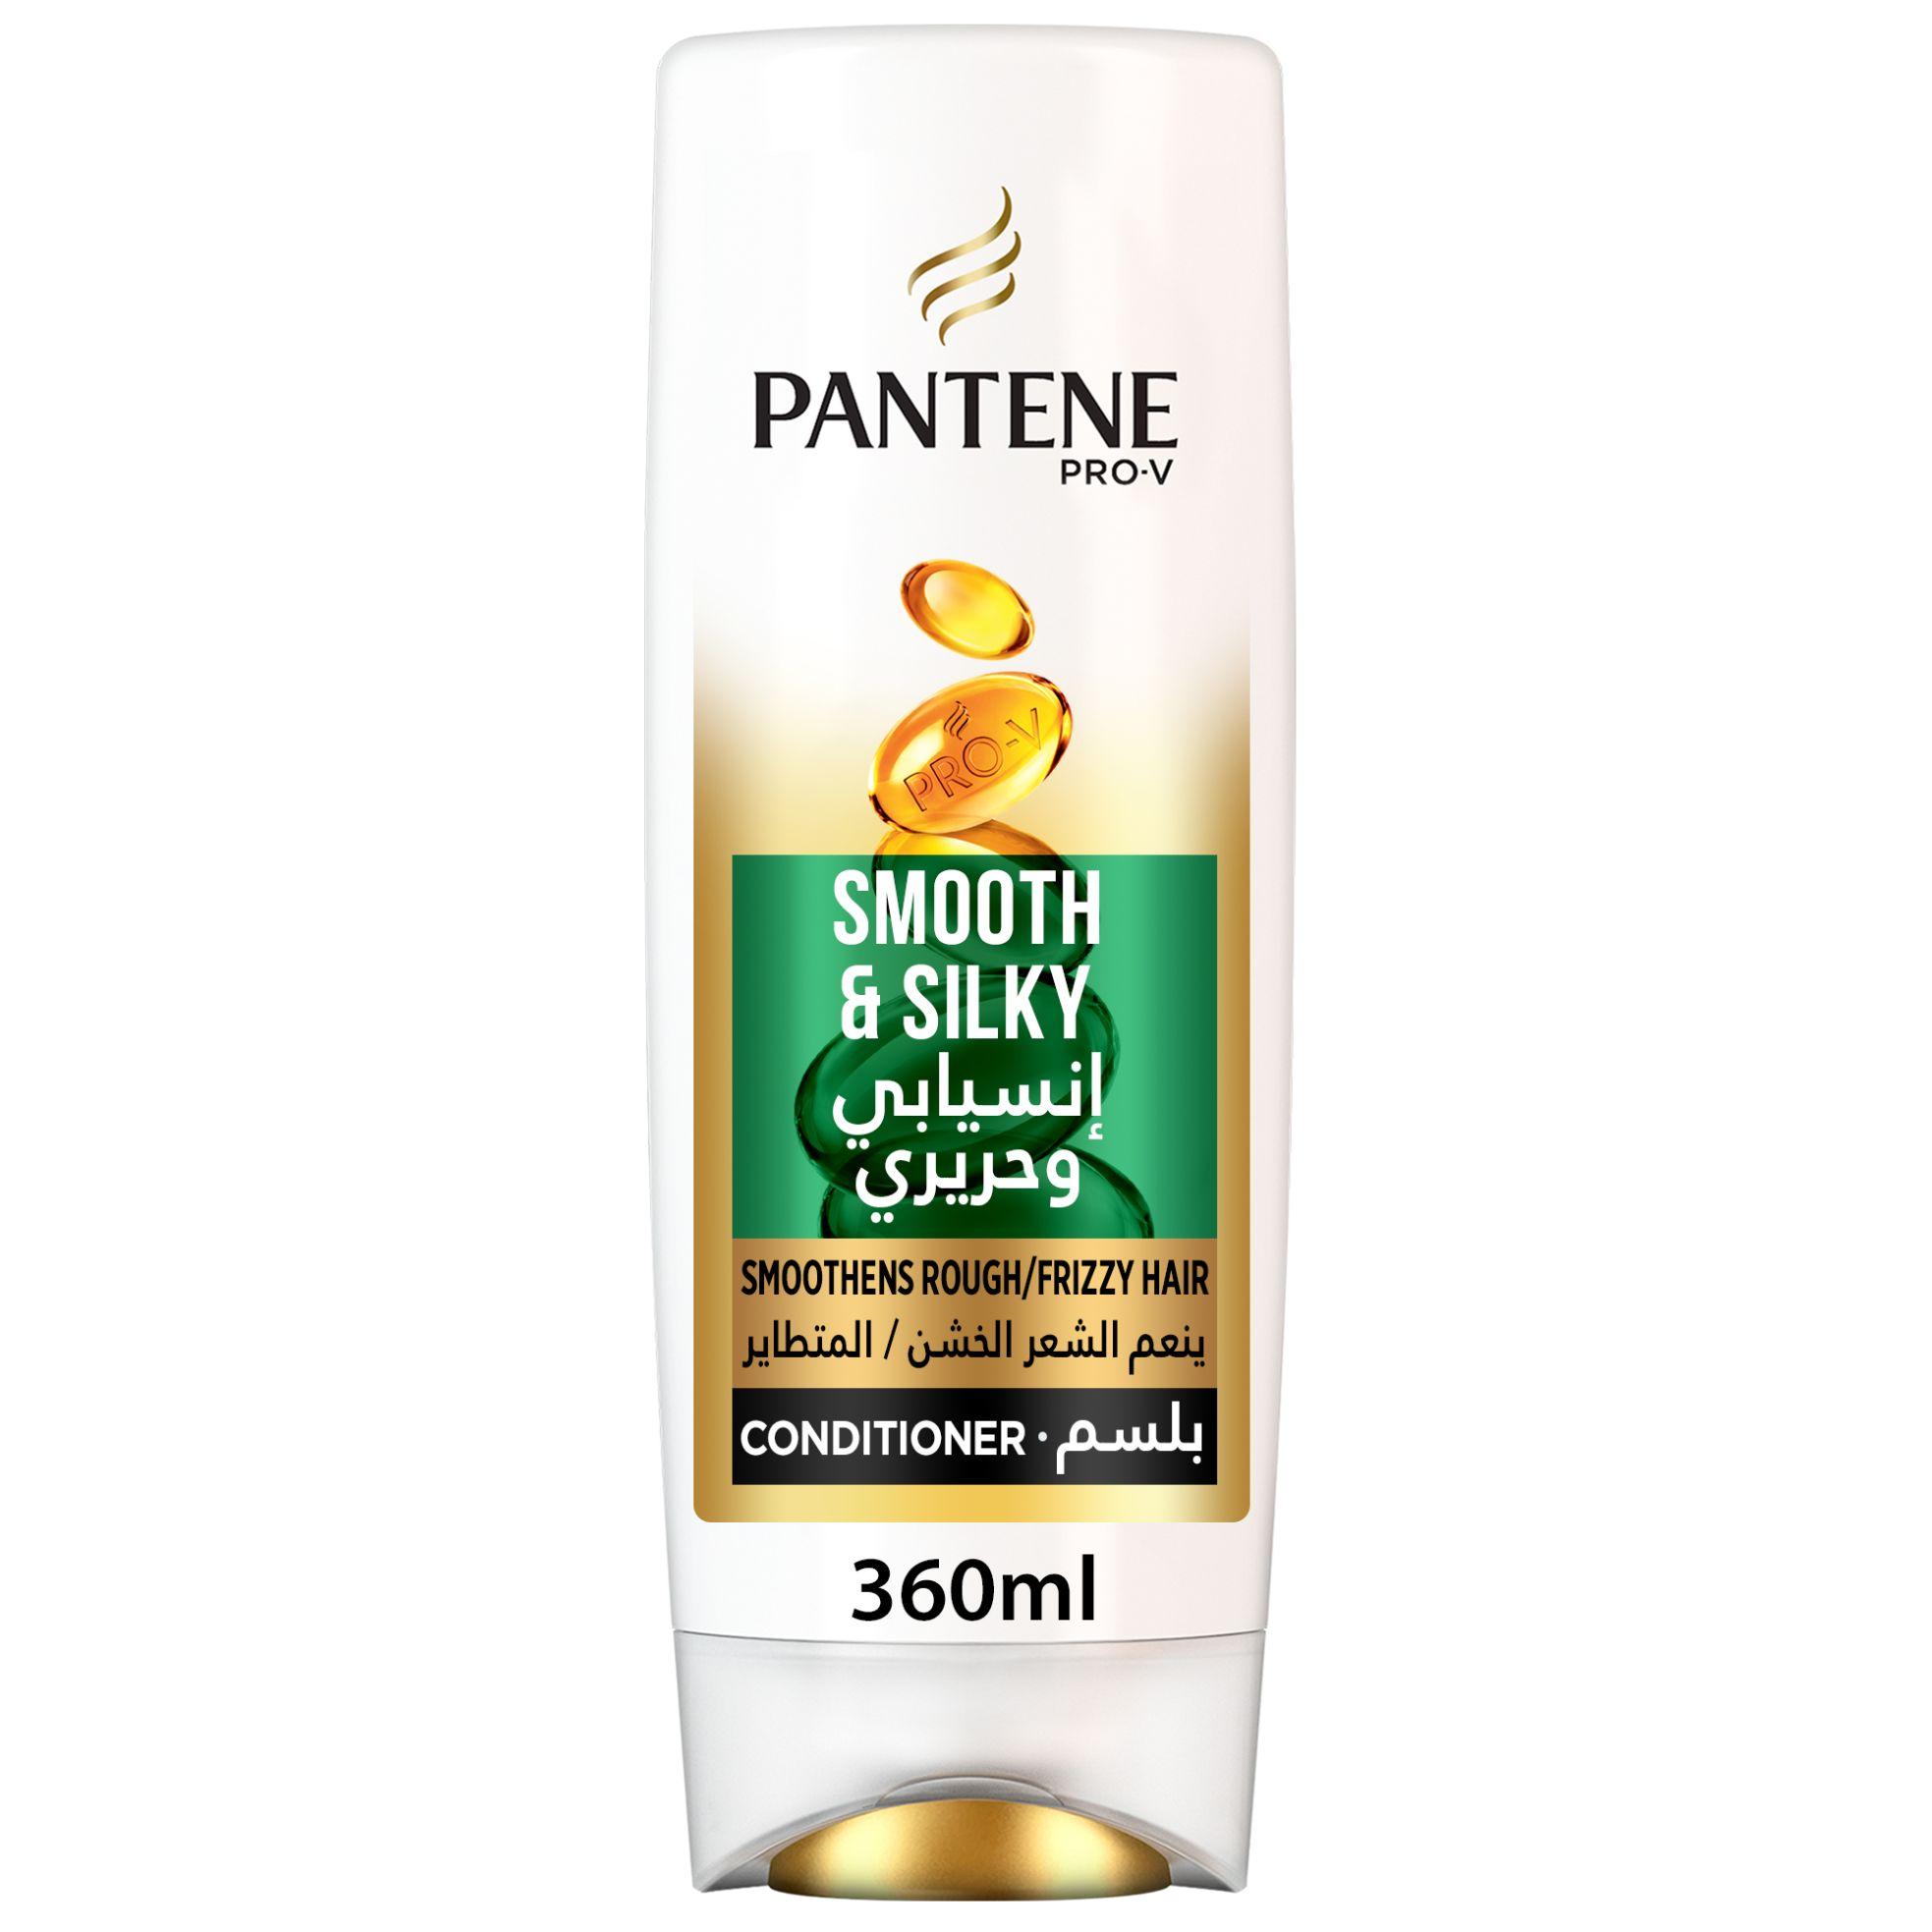 PANTENE PRO-V CONDITIONER SMOOTH & SILKY 360 ML